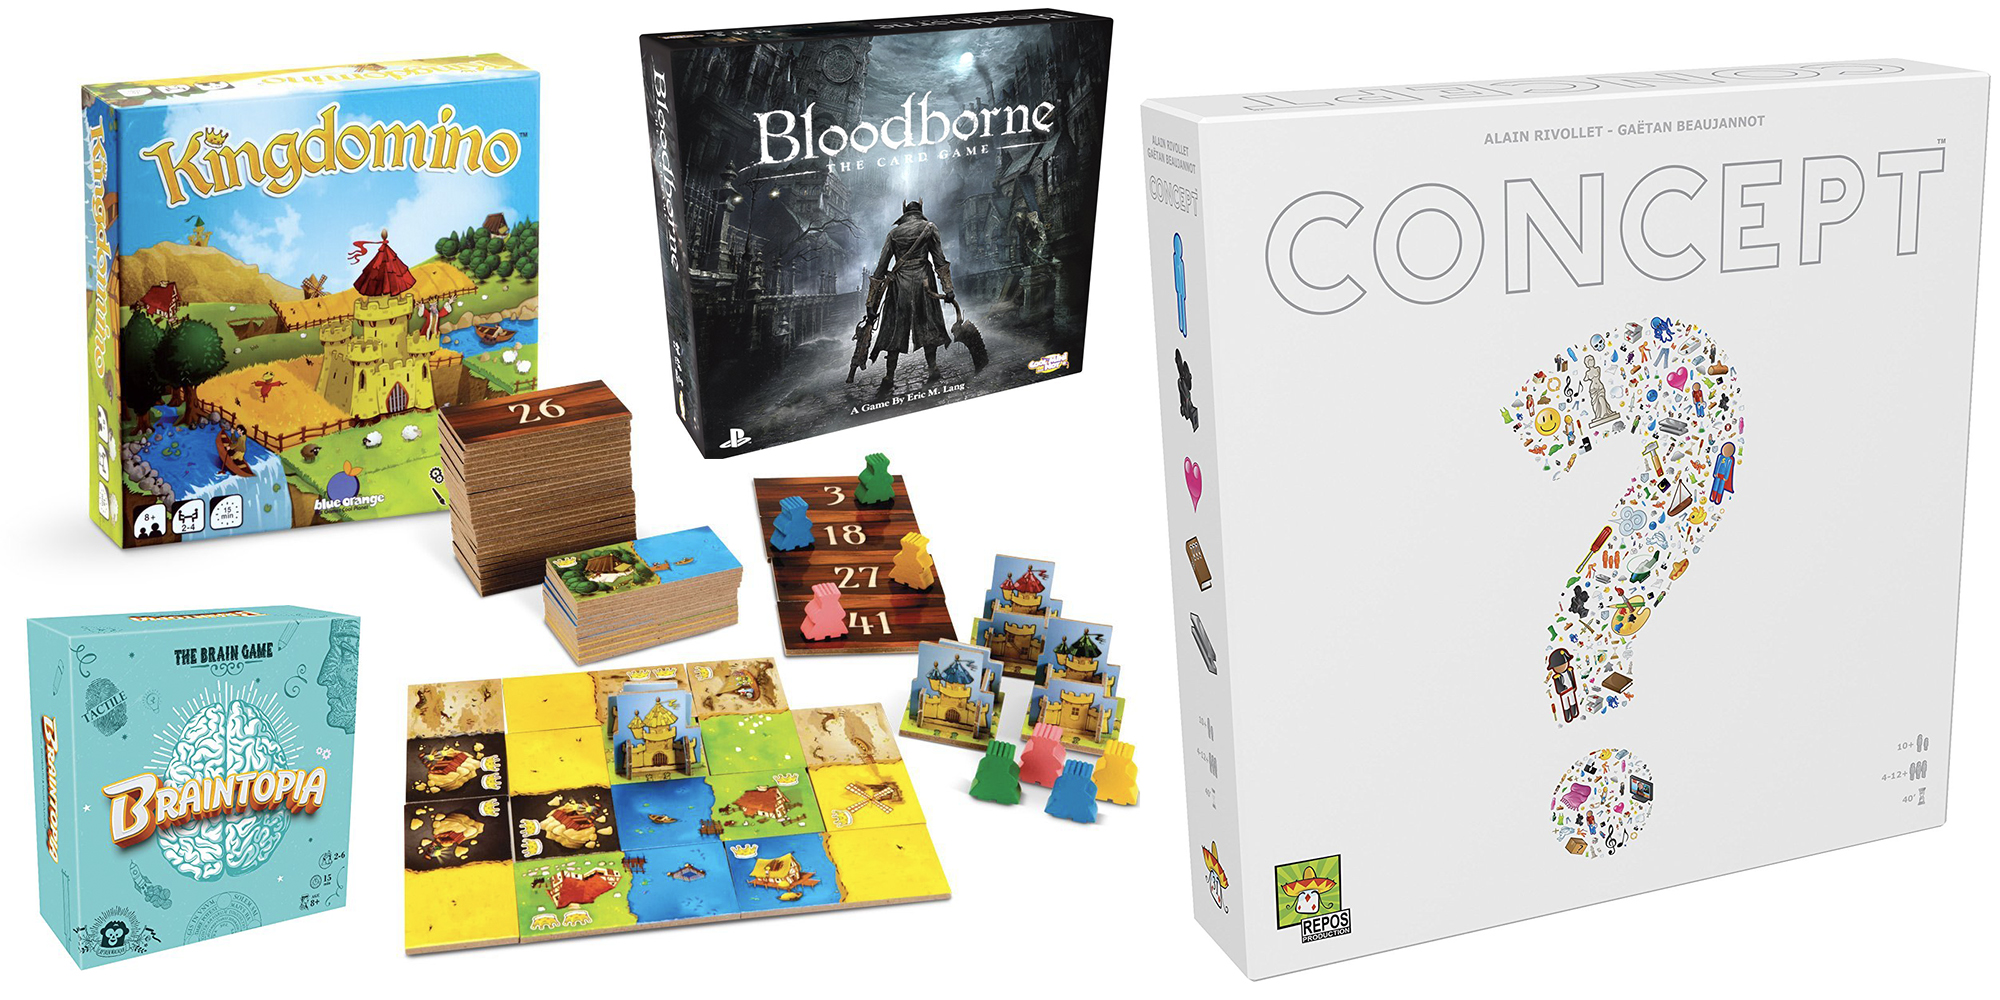 Amazon's Gold Box takes up to 40% off popular board games, from under $10